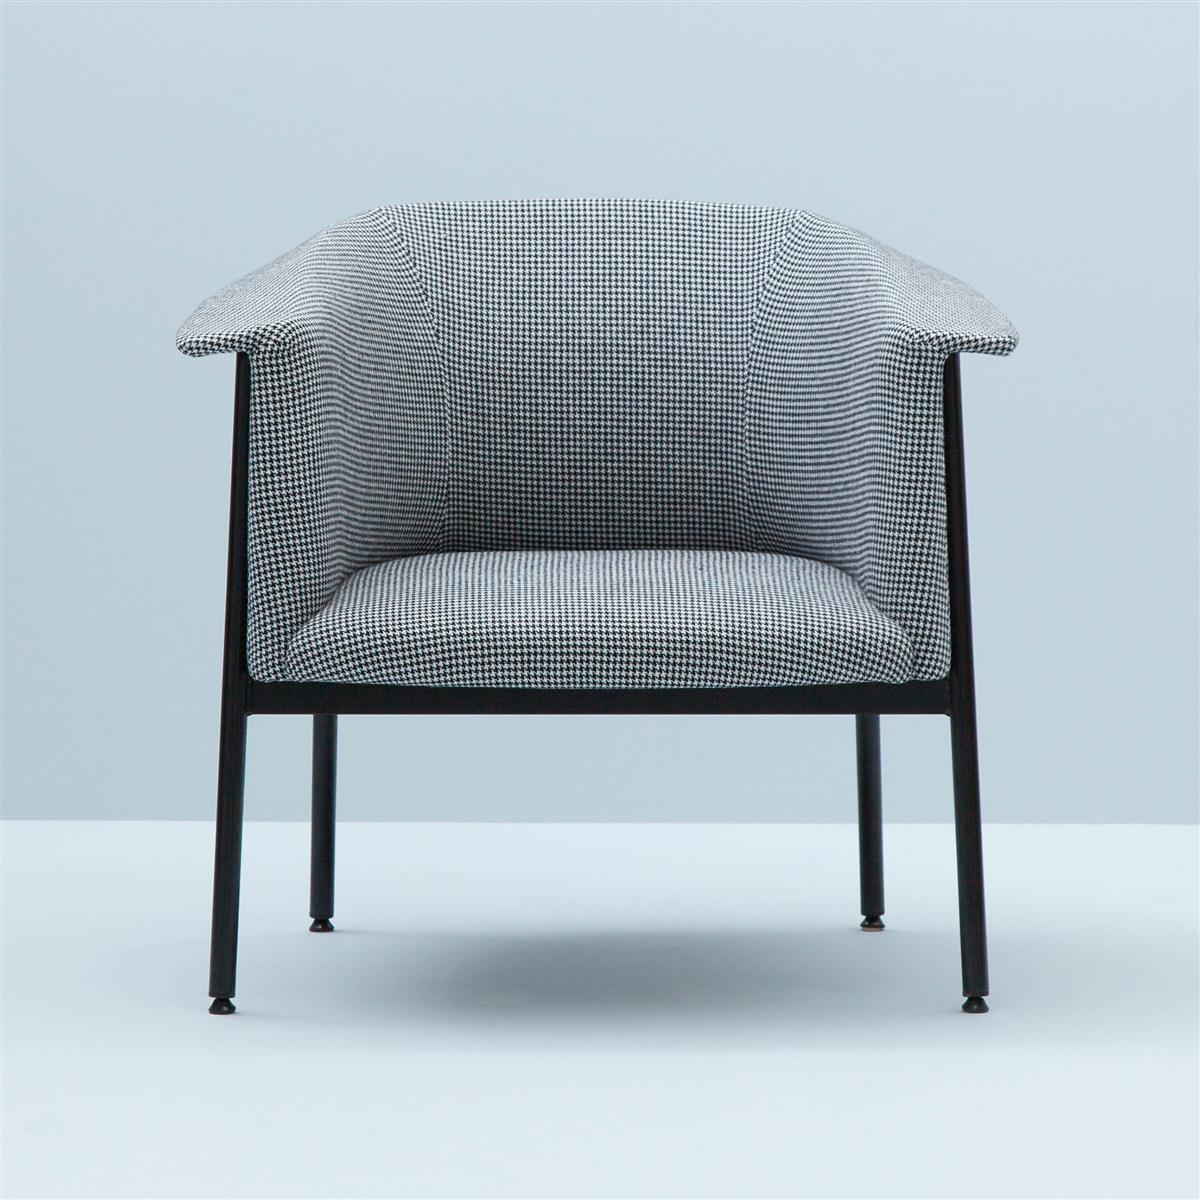 Kavai Lounge Chair. Bute Troon 27 tekstil.